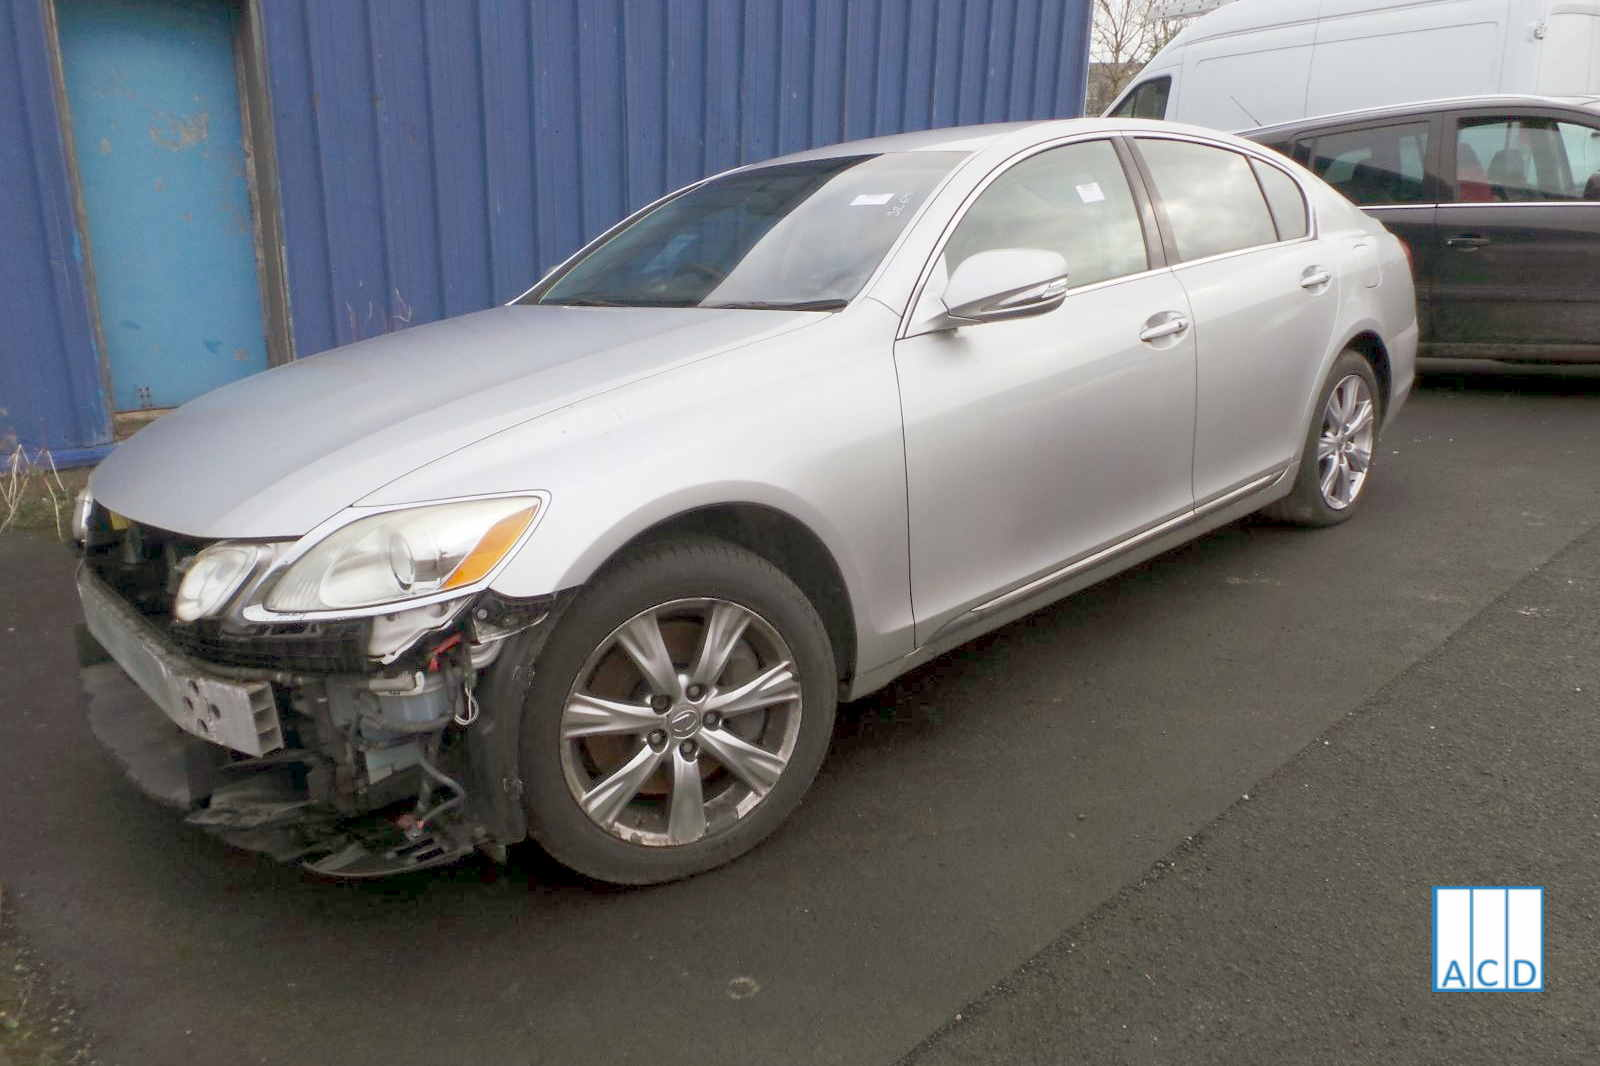 Lexus GS300 3.0L Petrol 6-Speed Automatic 2008 #3269 01